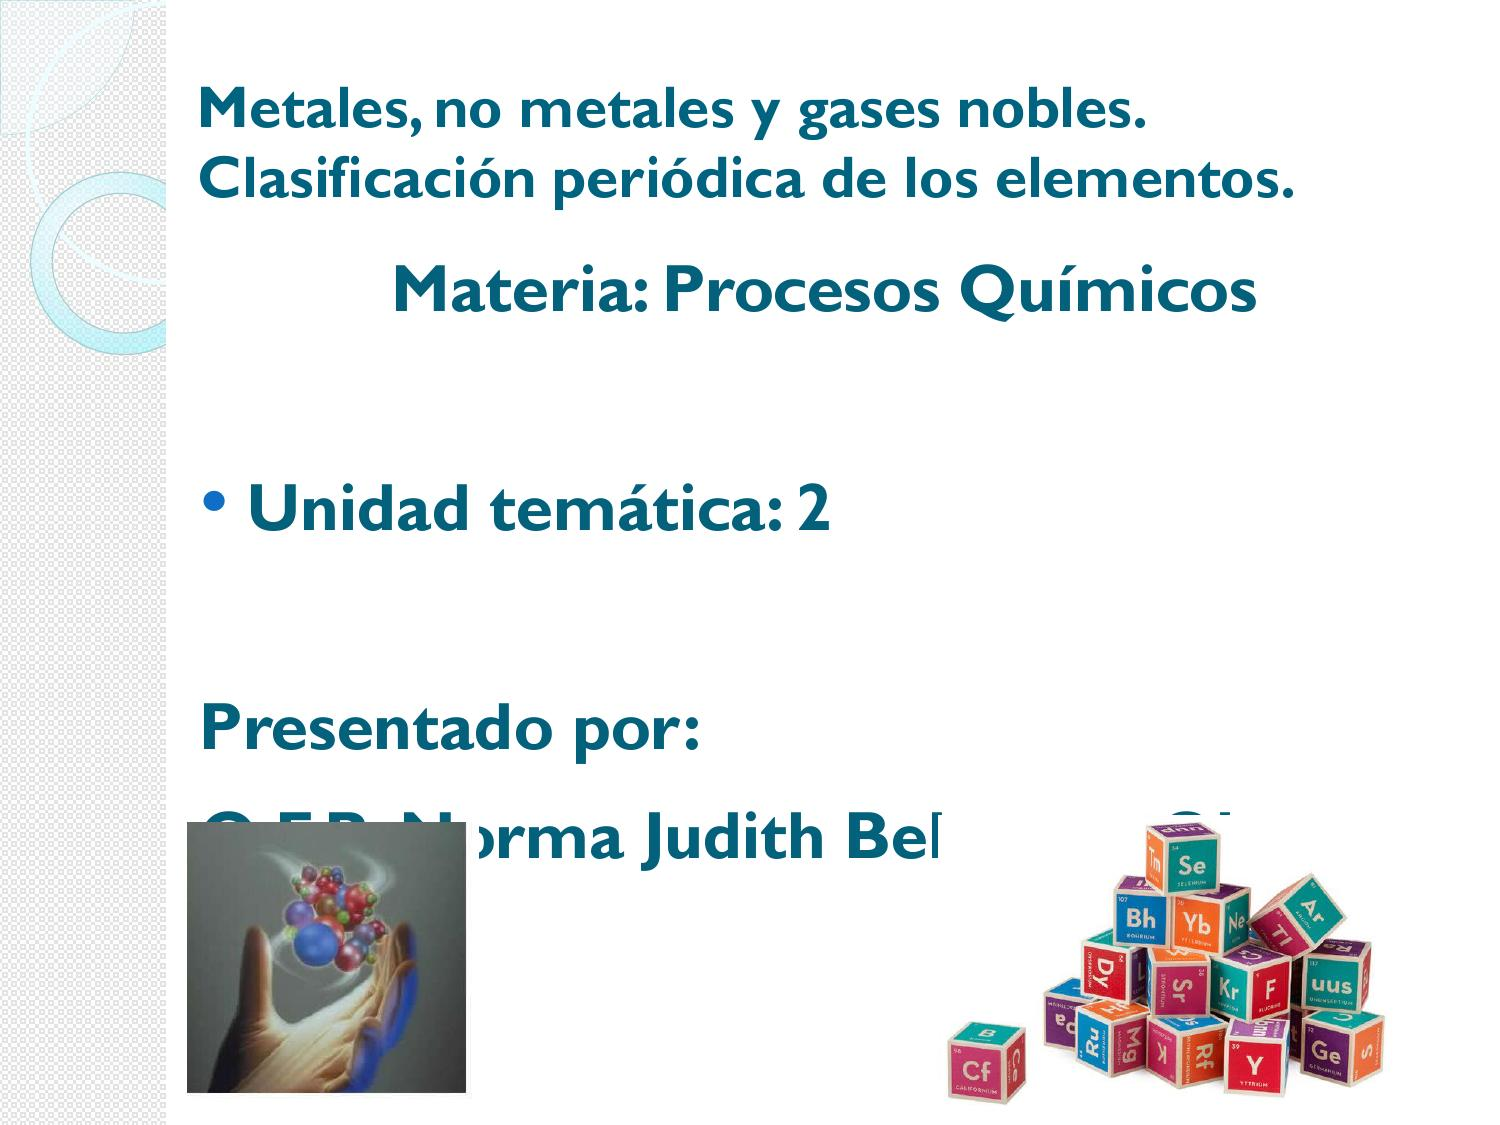 Metales no metales y gases nobles by norma belmares issuu urtaz Image collections